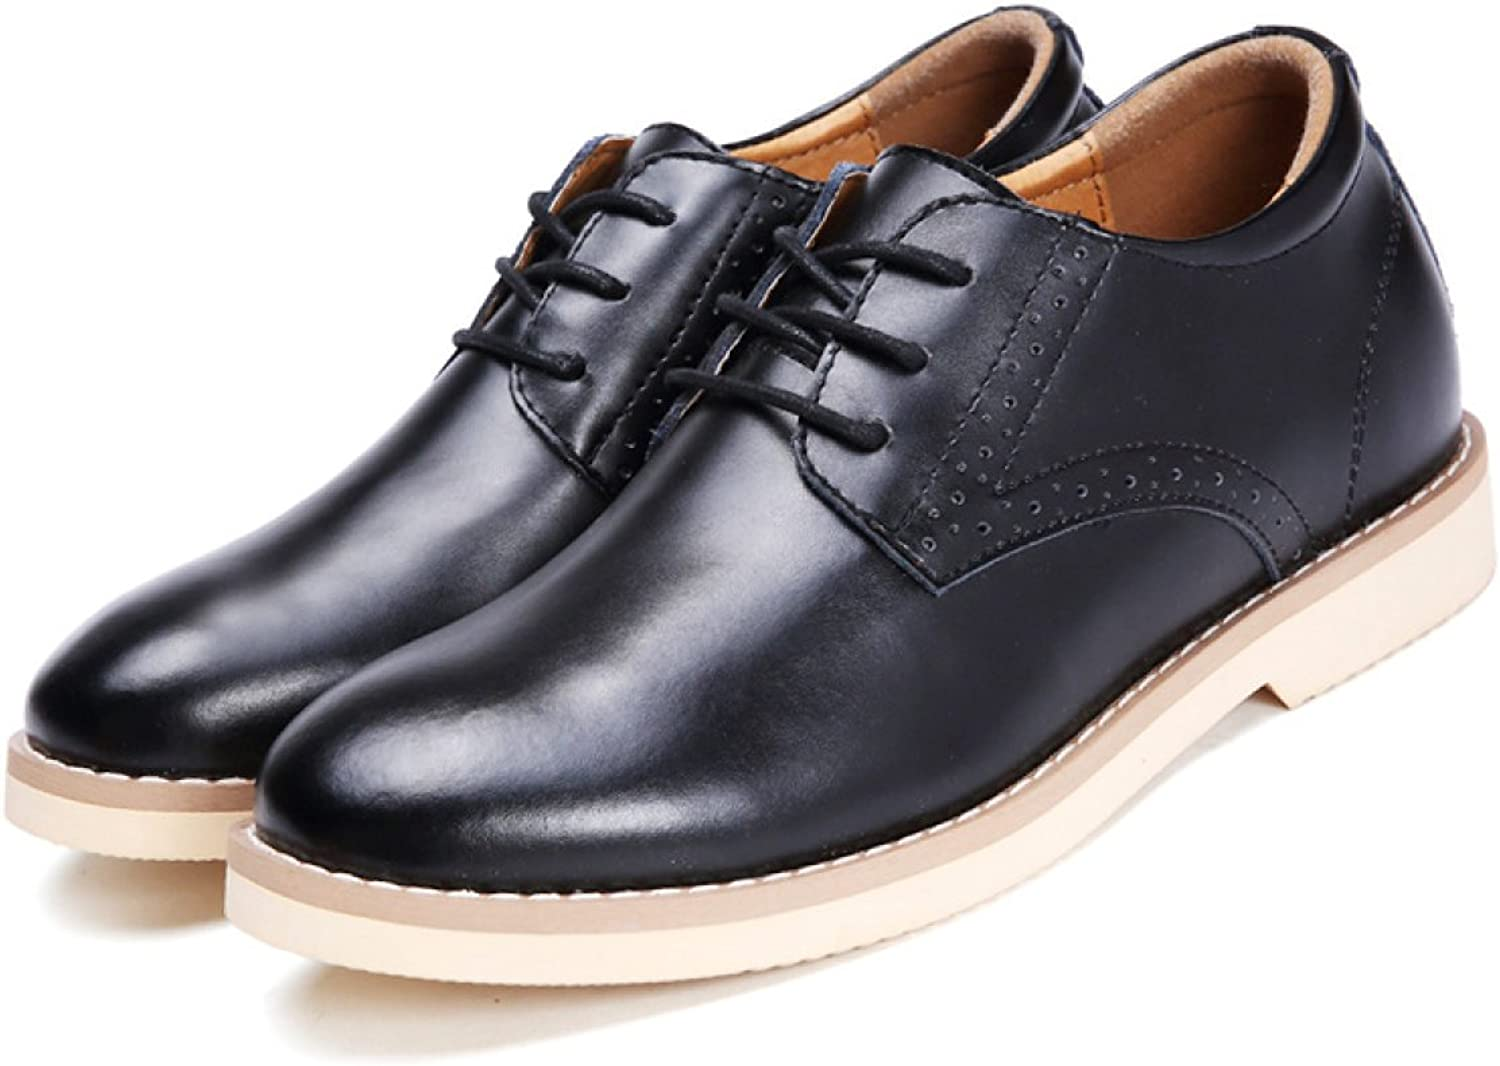 Autumn Men Leather Increased Within Casual shoes Business Dress shoes Men's shoes